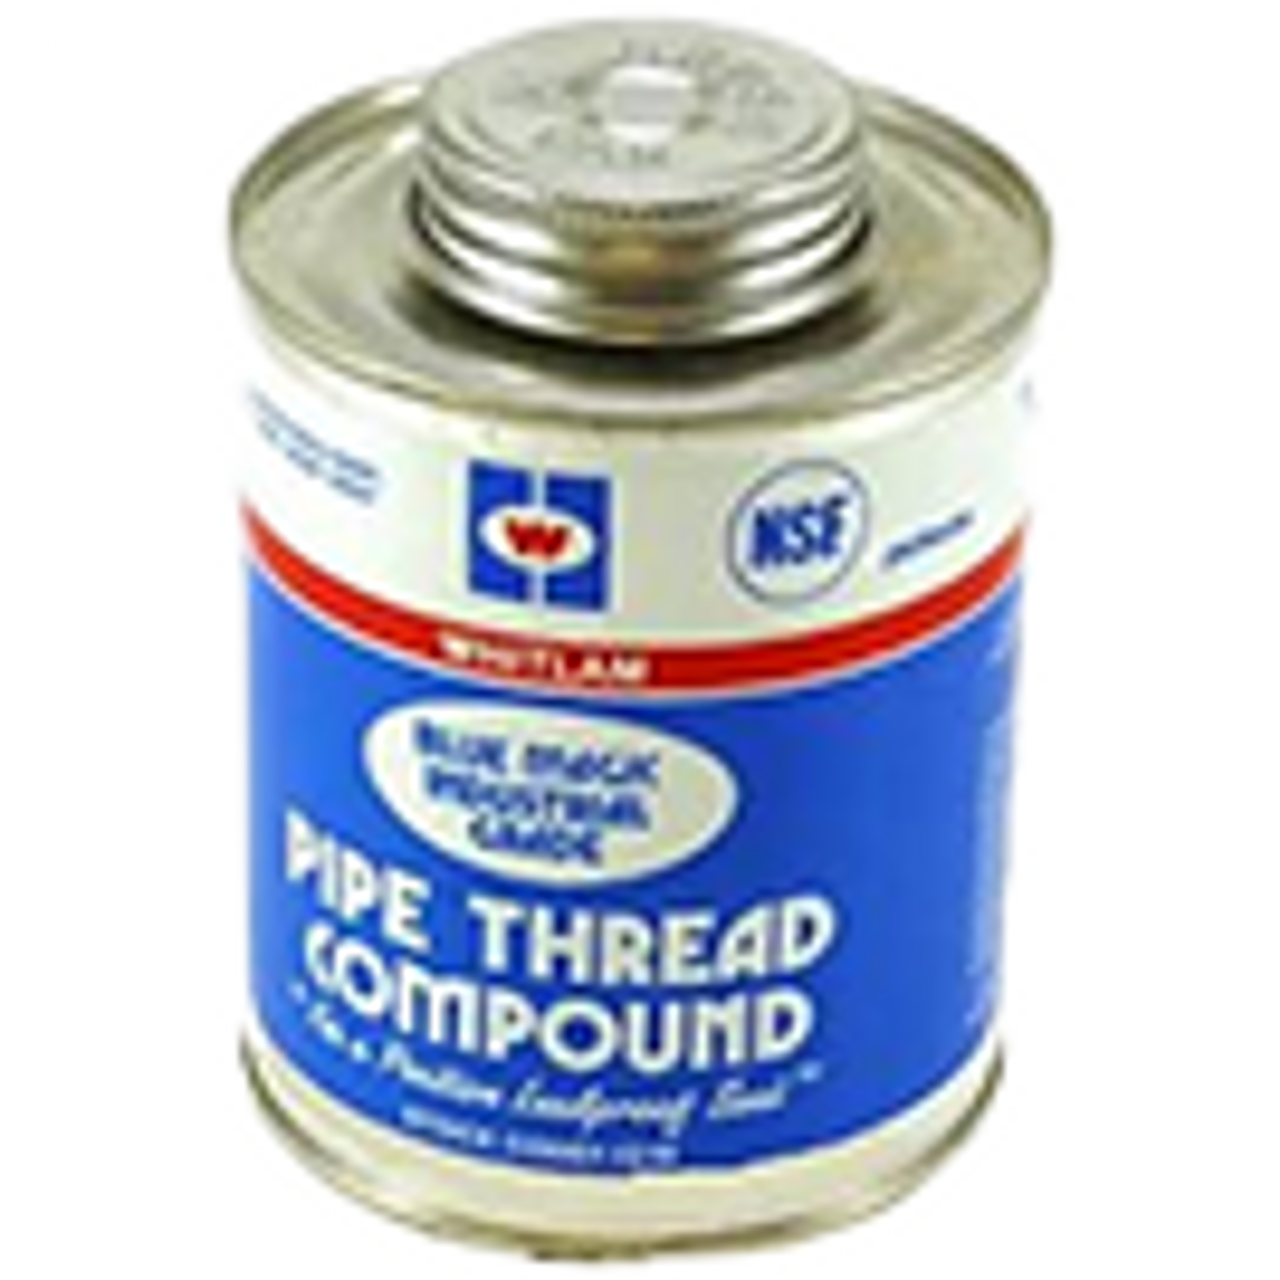 Thread Compounds